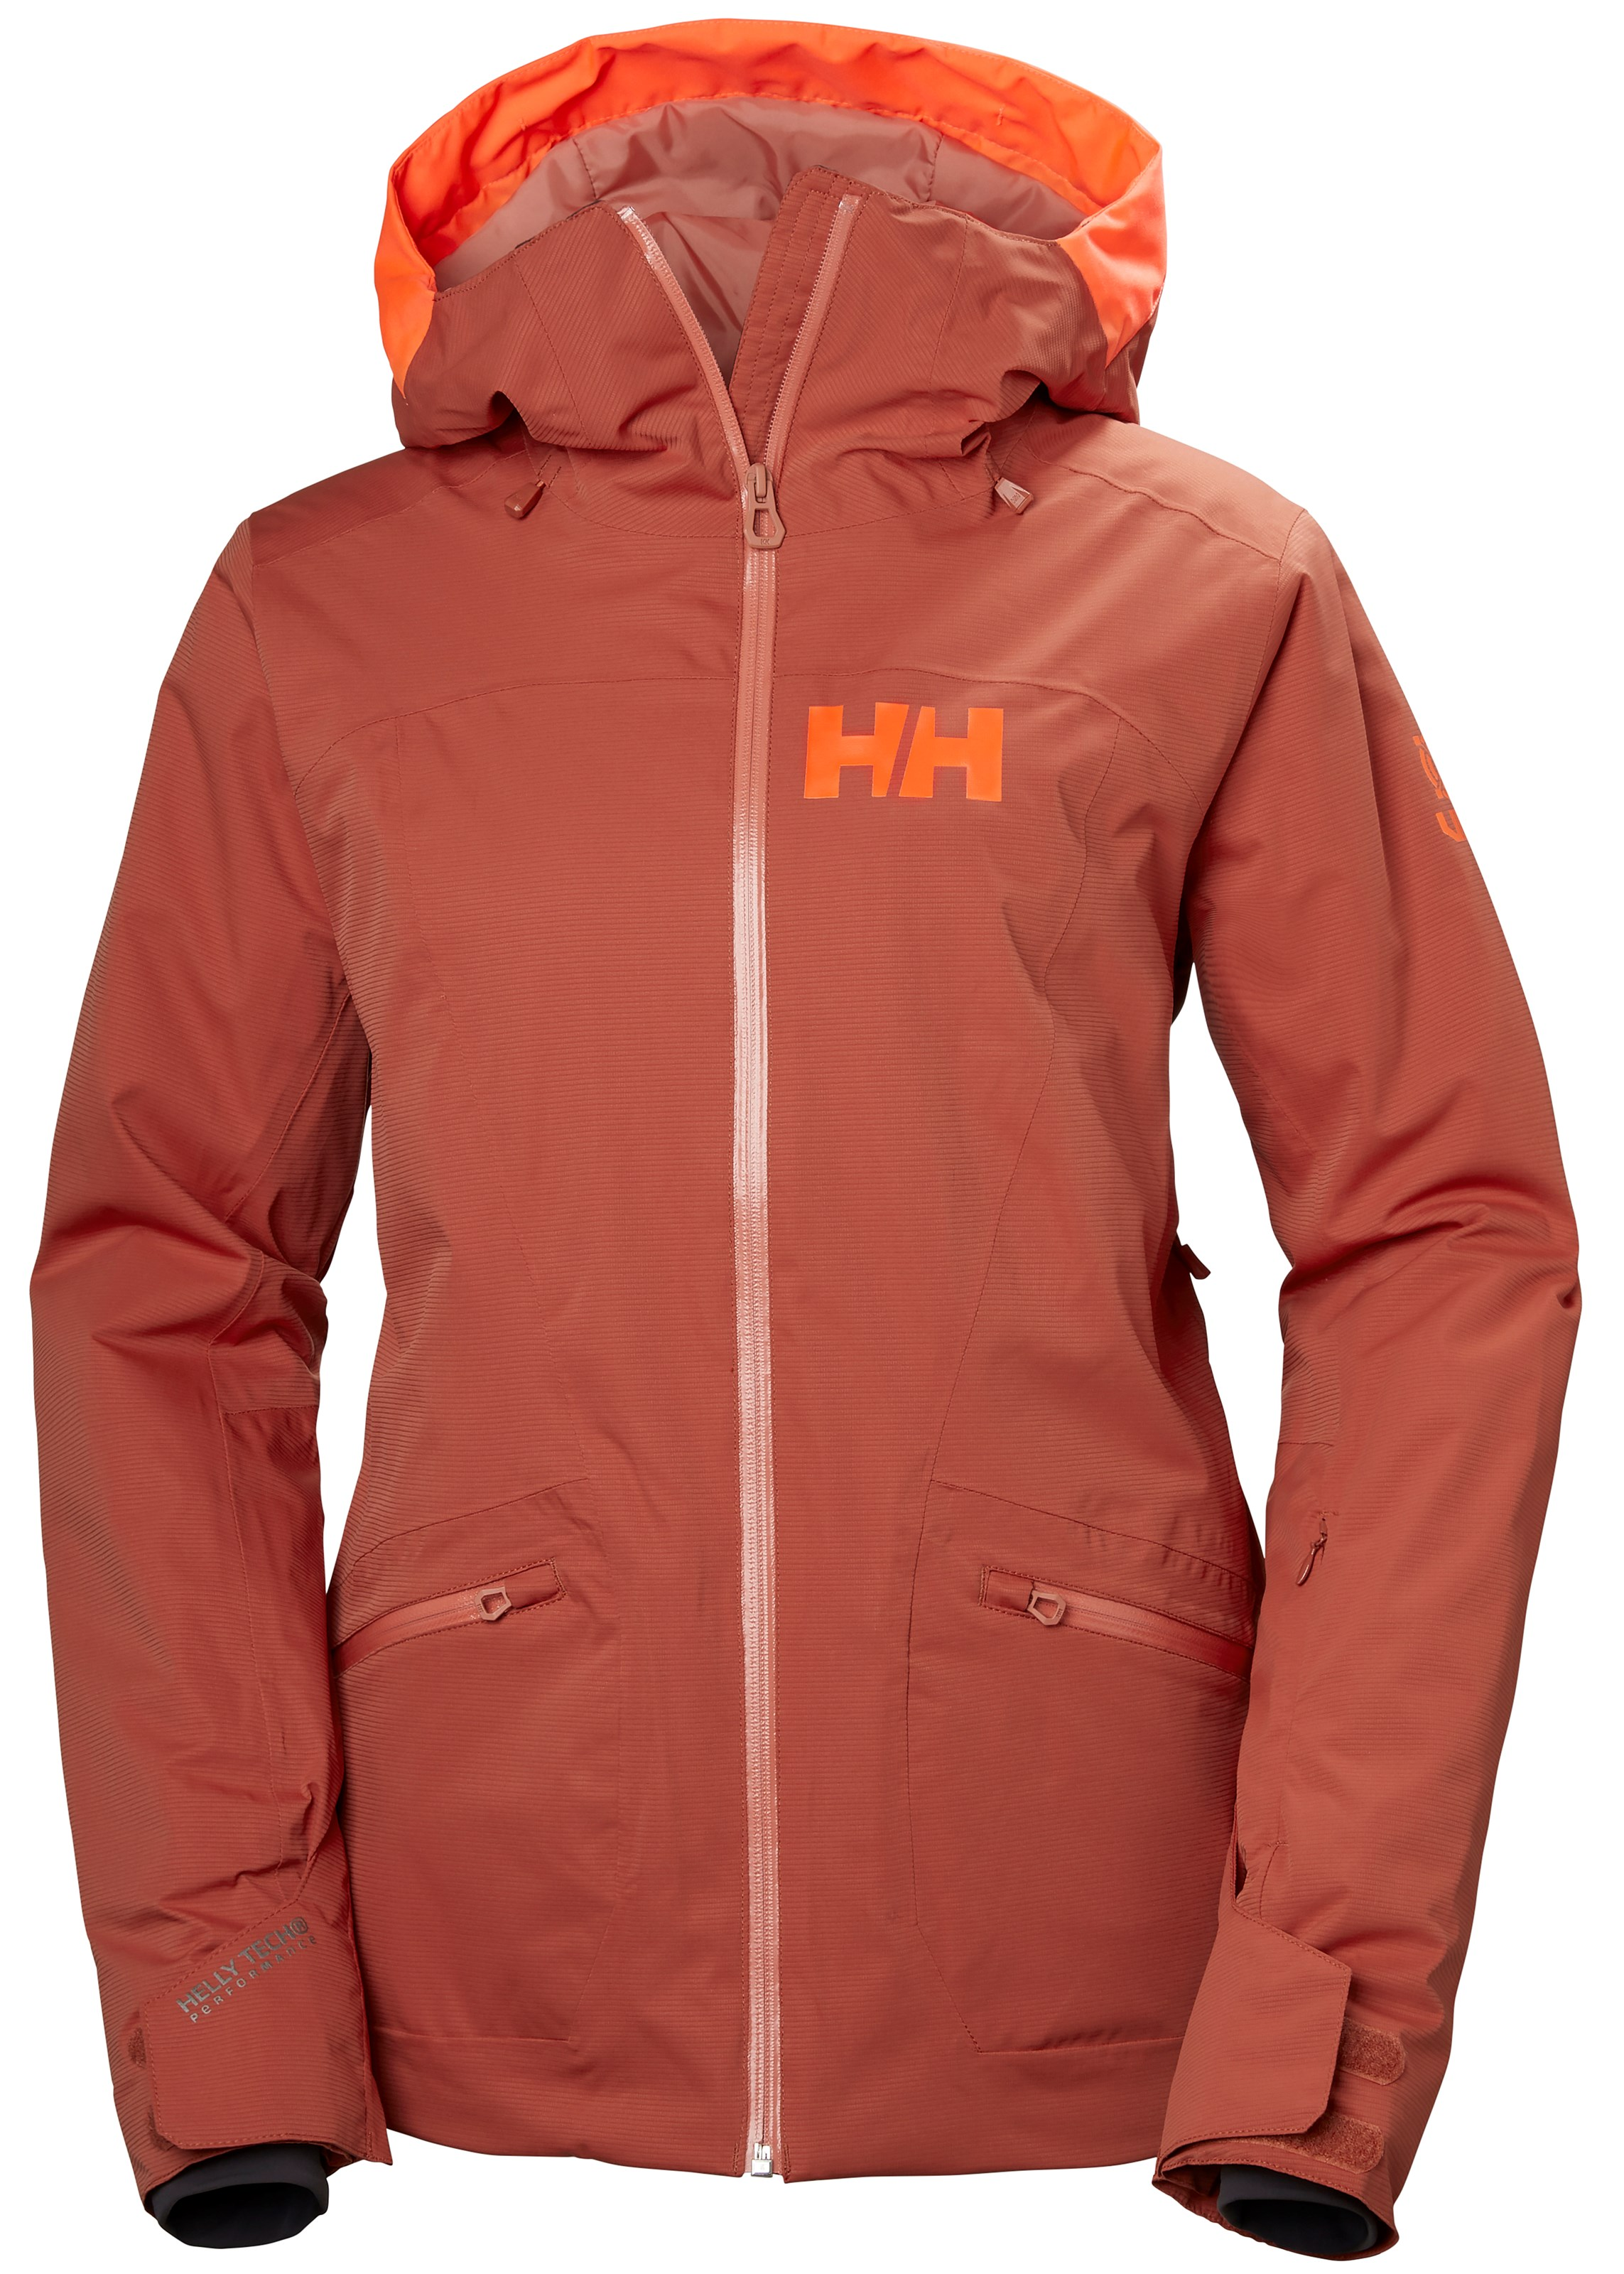 dddf1db4 Helly Hansen W Glory Jacket, skijakke dame Red Brick 65577-199 XS 2018